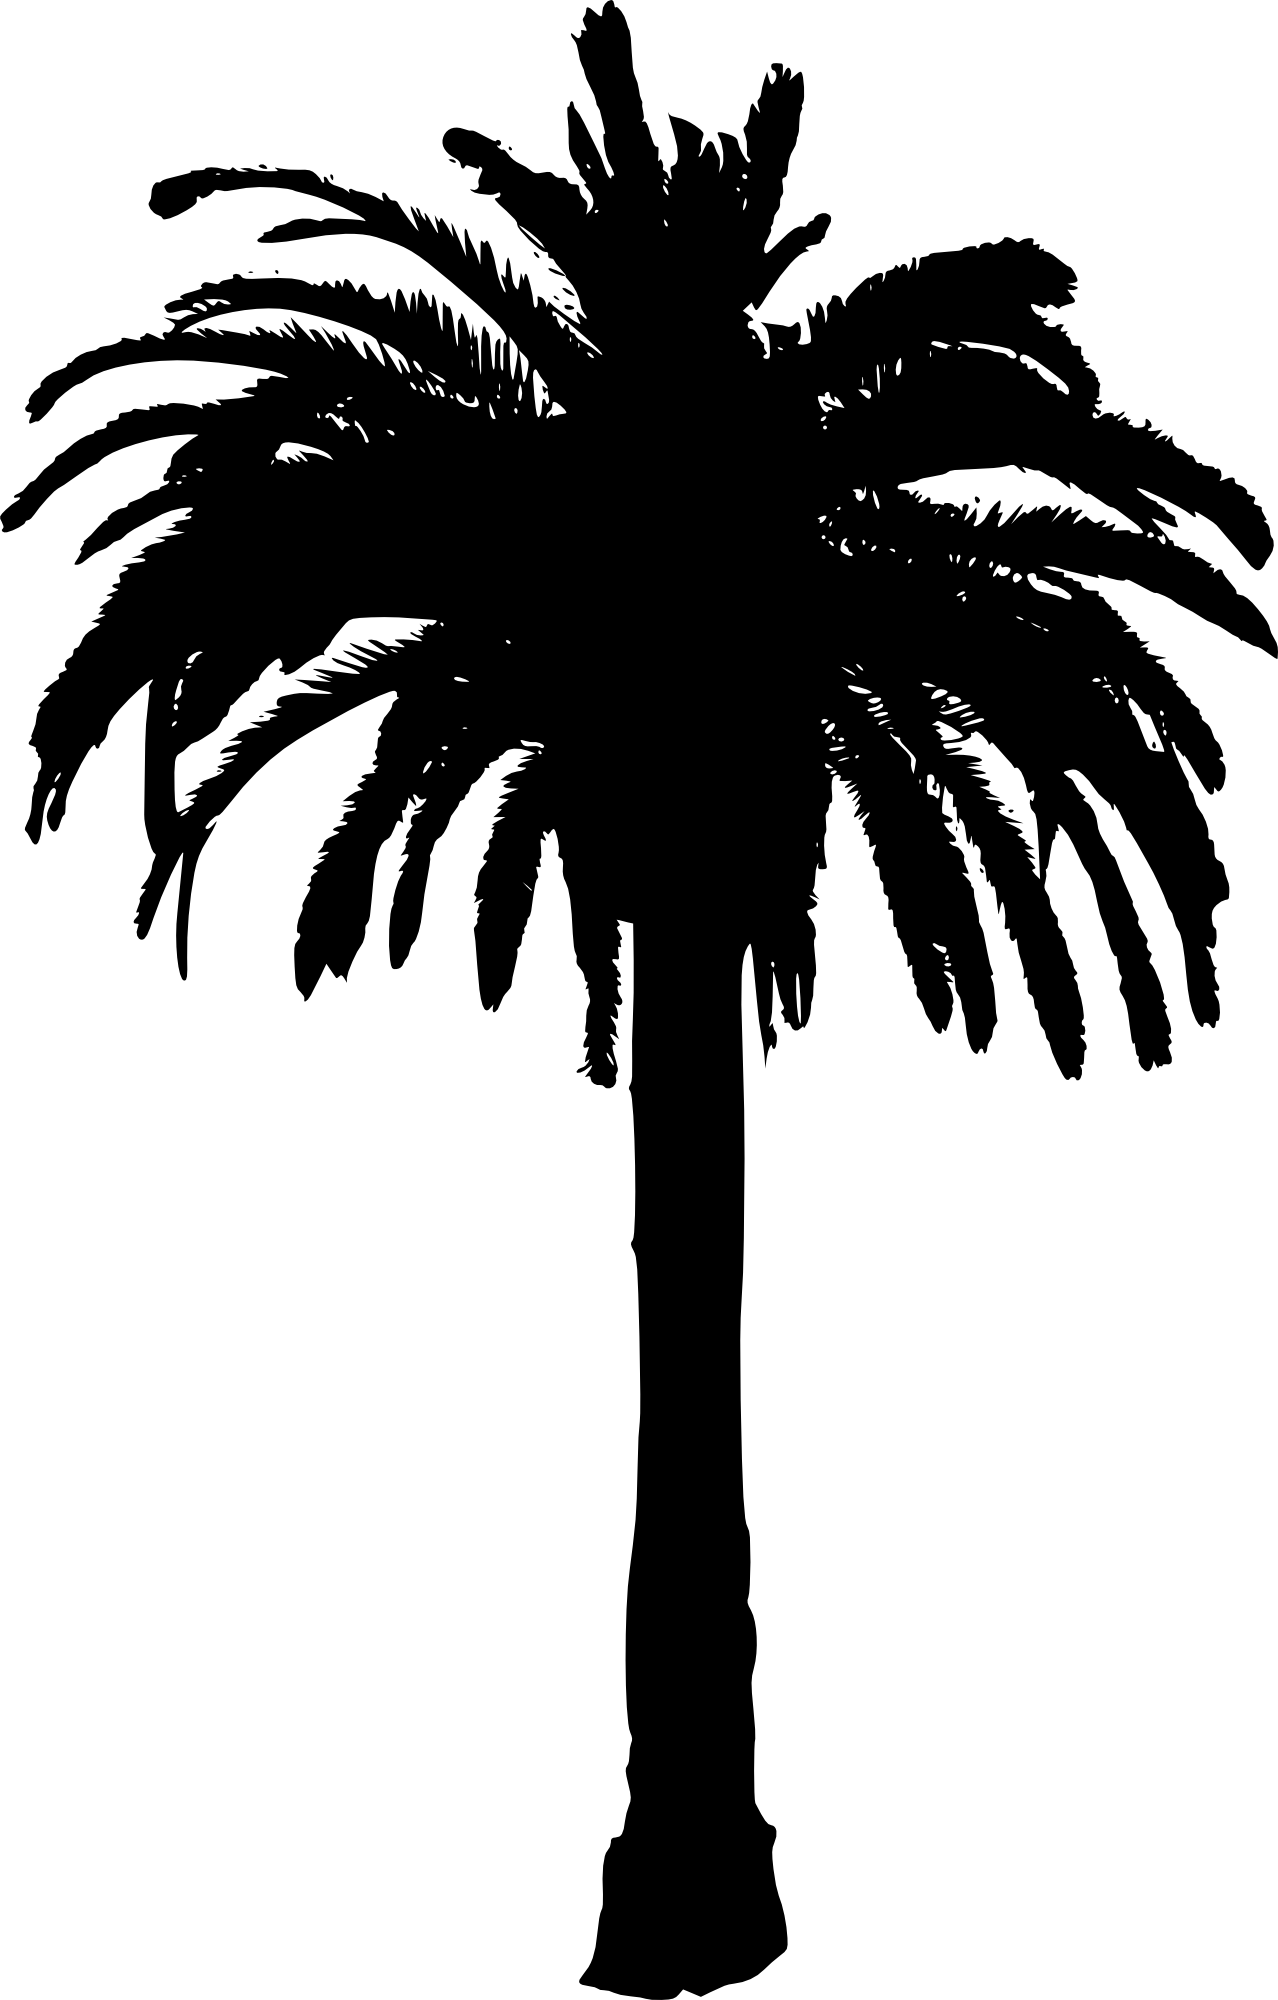 Palm tree silhouette clipart image transparent library Bamboo Forest Drawing at GetDrawings.com | Free for personal use ... image transparent library